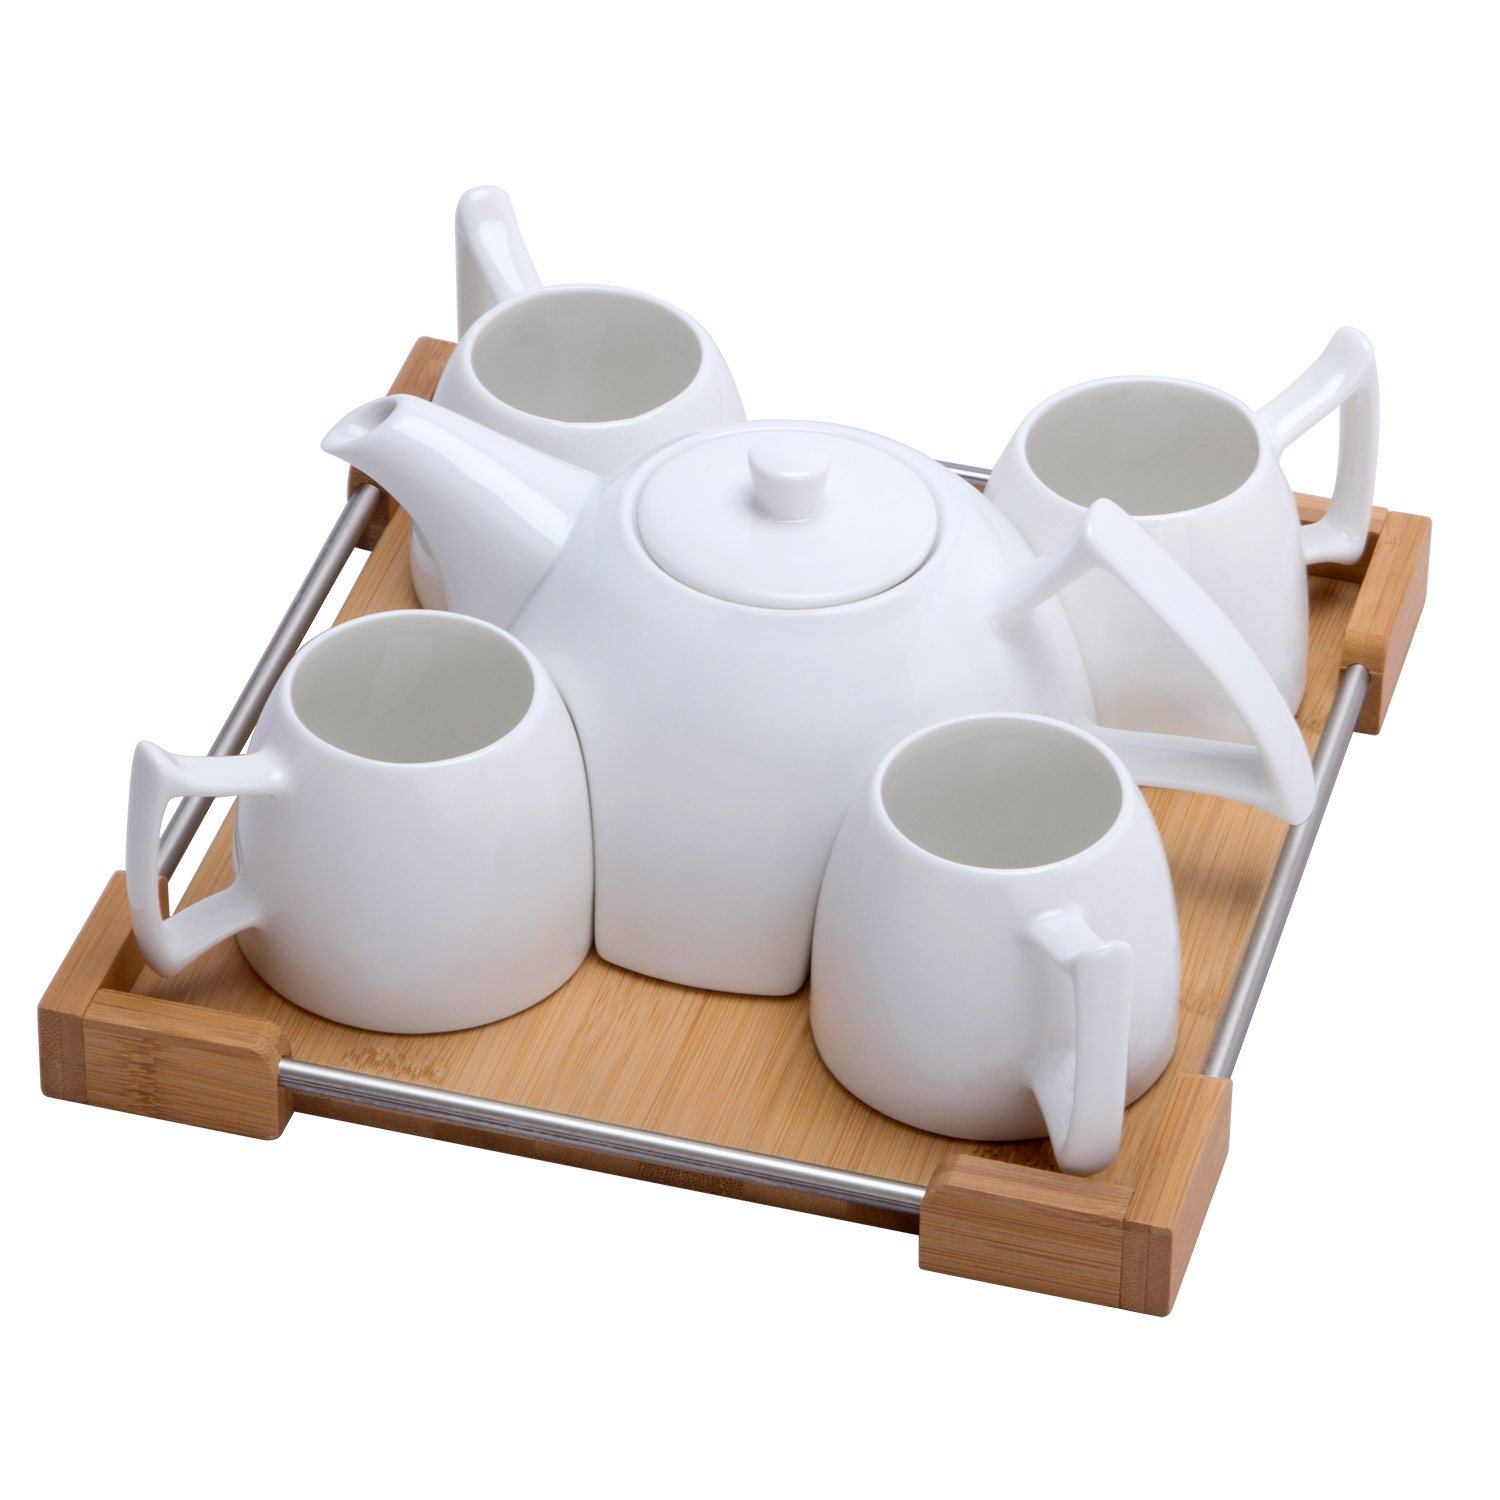 Porcelain Tea Set - Ceramic Teapot Coffee Cup Set for Drinking Tea,Latte,Espresso,or Water including White Tea Pot,4 Cups,Bamboo Serving Tray One Goods DA16115